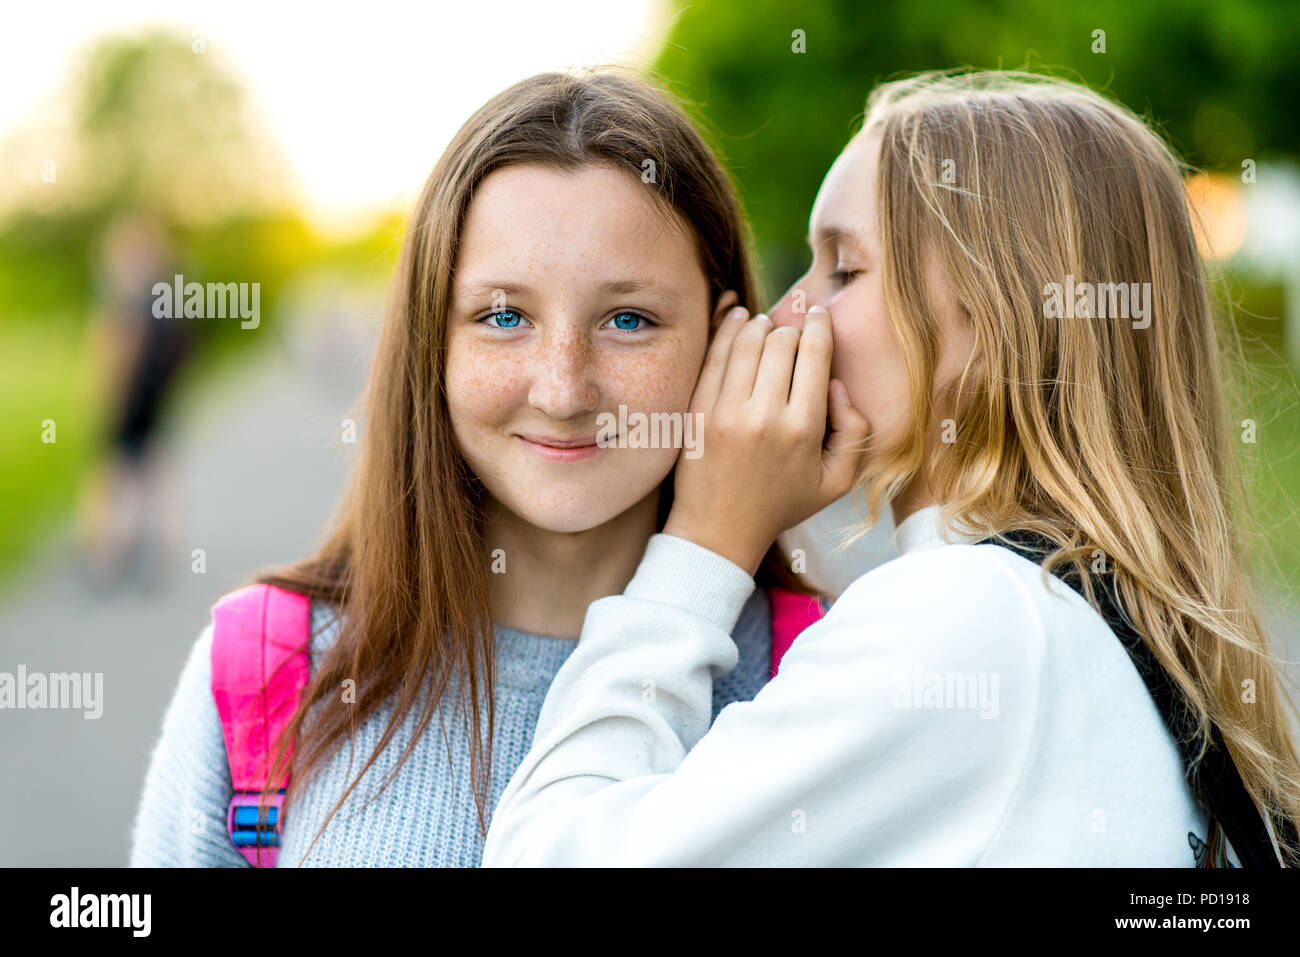 Two girl friends schoolgirl. In the summer in city. Tells a friend in the ear, a secret, really. The concept of surprise, best friends, gift. Emotion of happiness is the pleasure of a smile. - Stock Image